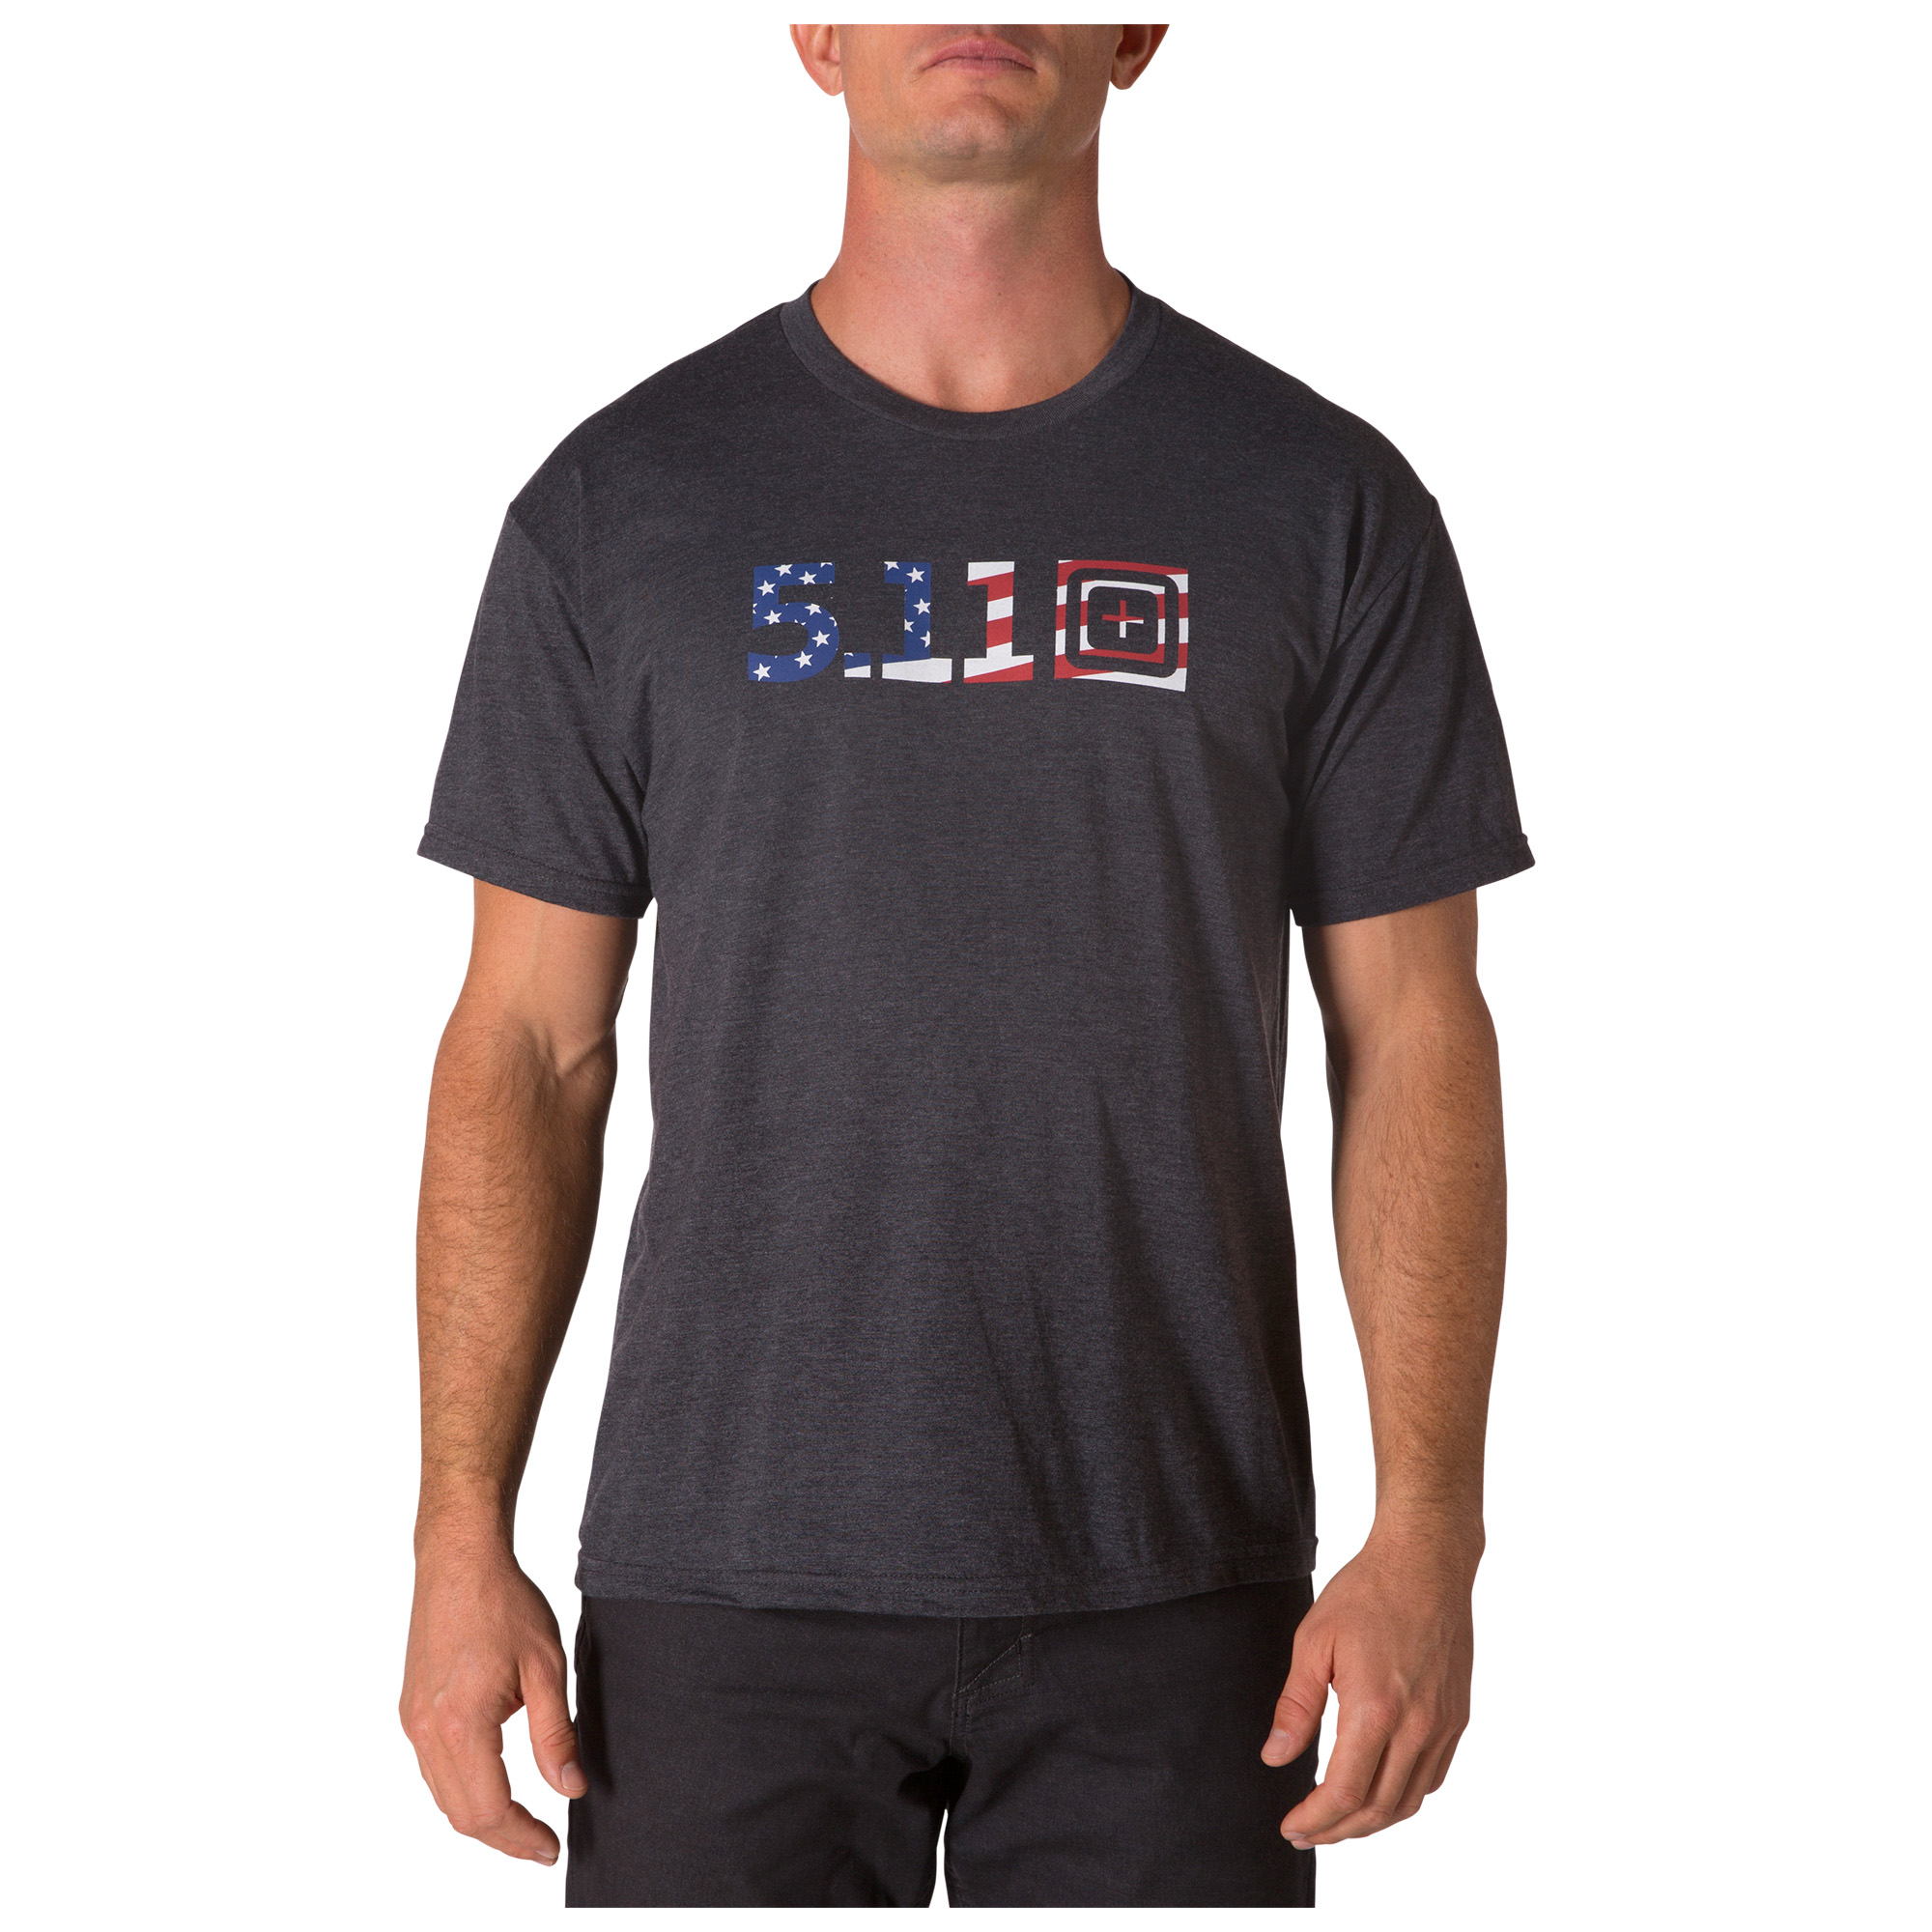 fde5c0fe Performance Short Sleeve Tee - T-Shirts - Shirts - Men's - 5.11 Tactical